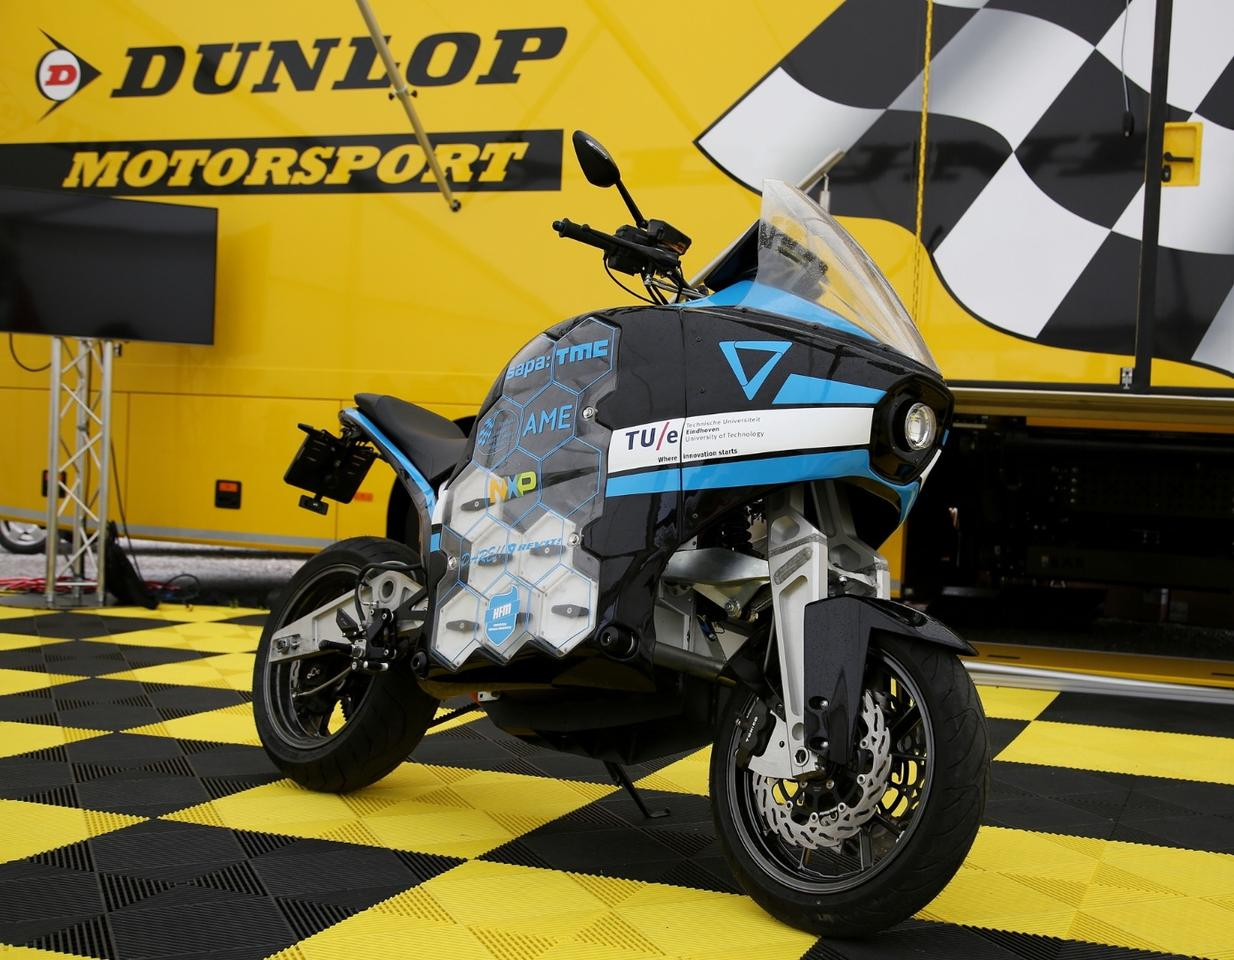 The bikes are fitted especially with Dunlop RoadSmart III tires